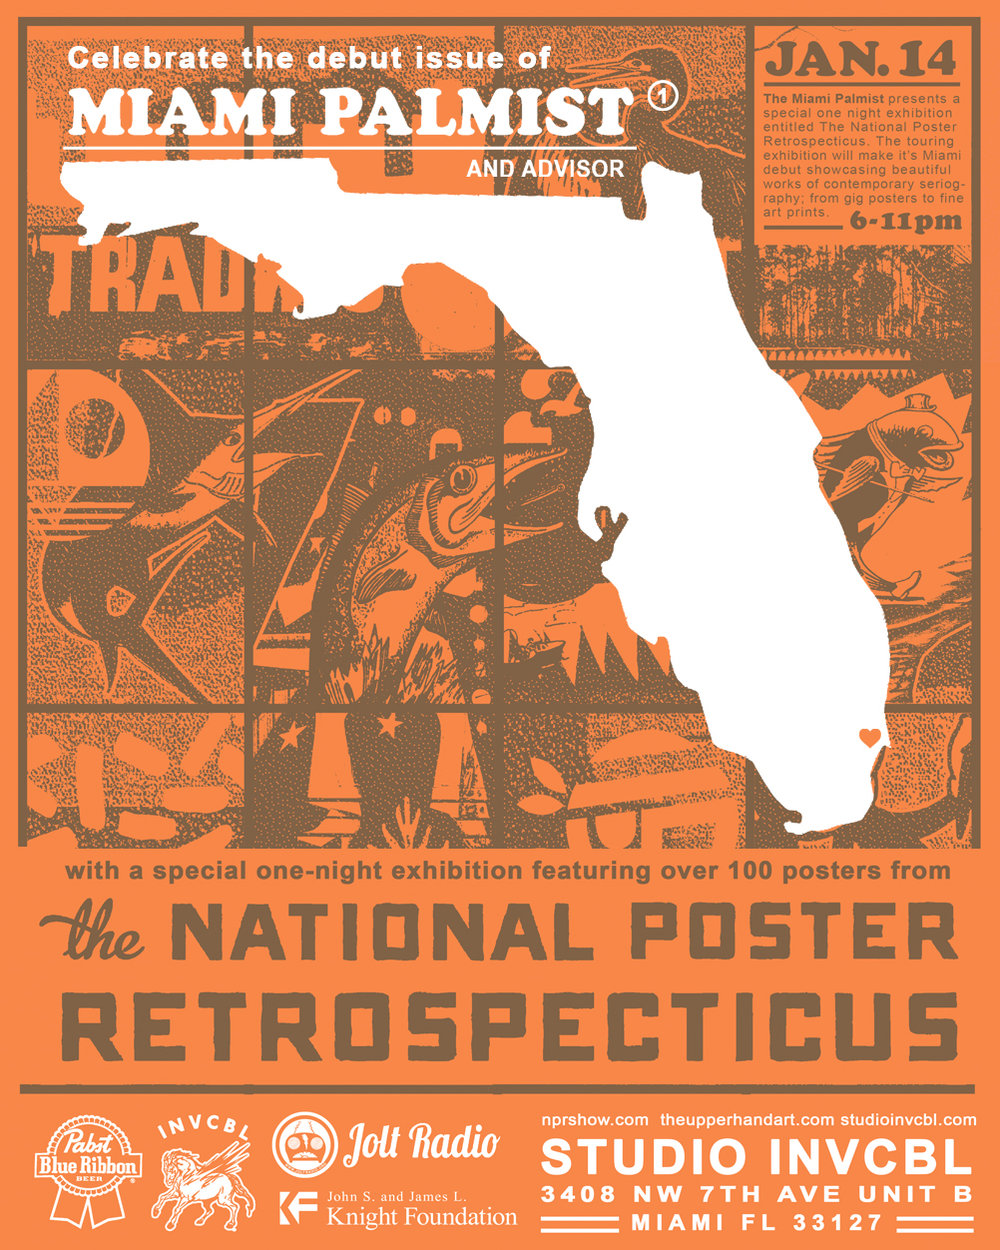 Jan. 14th / Join us for the National Poster Retrospecticus / Hosted by: Brian Butler at Studio INVCBL - 6 - 11pm